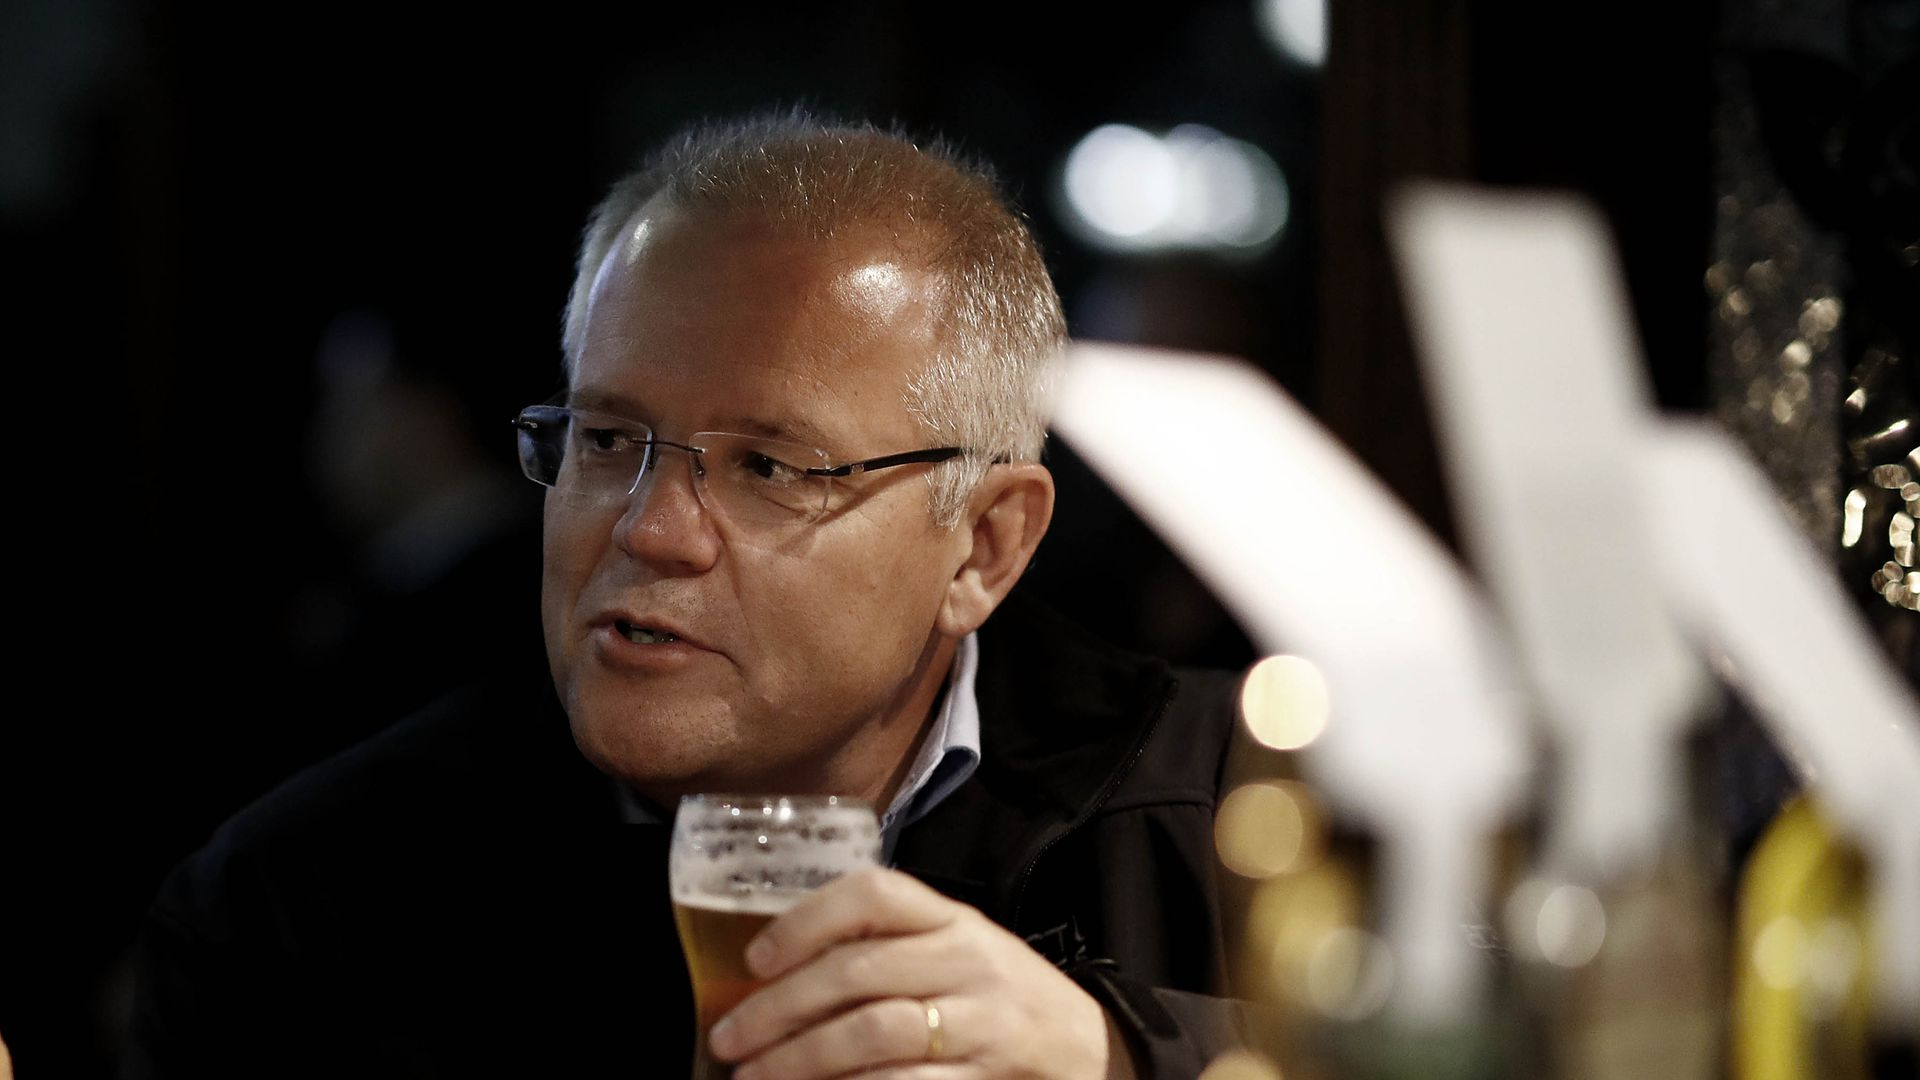 Australia's PM Scott Morrison drinks a beer while campaigning in the Australian federal election.